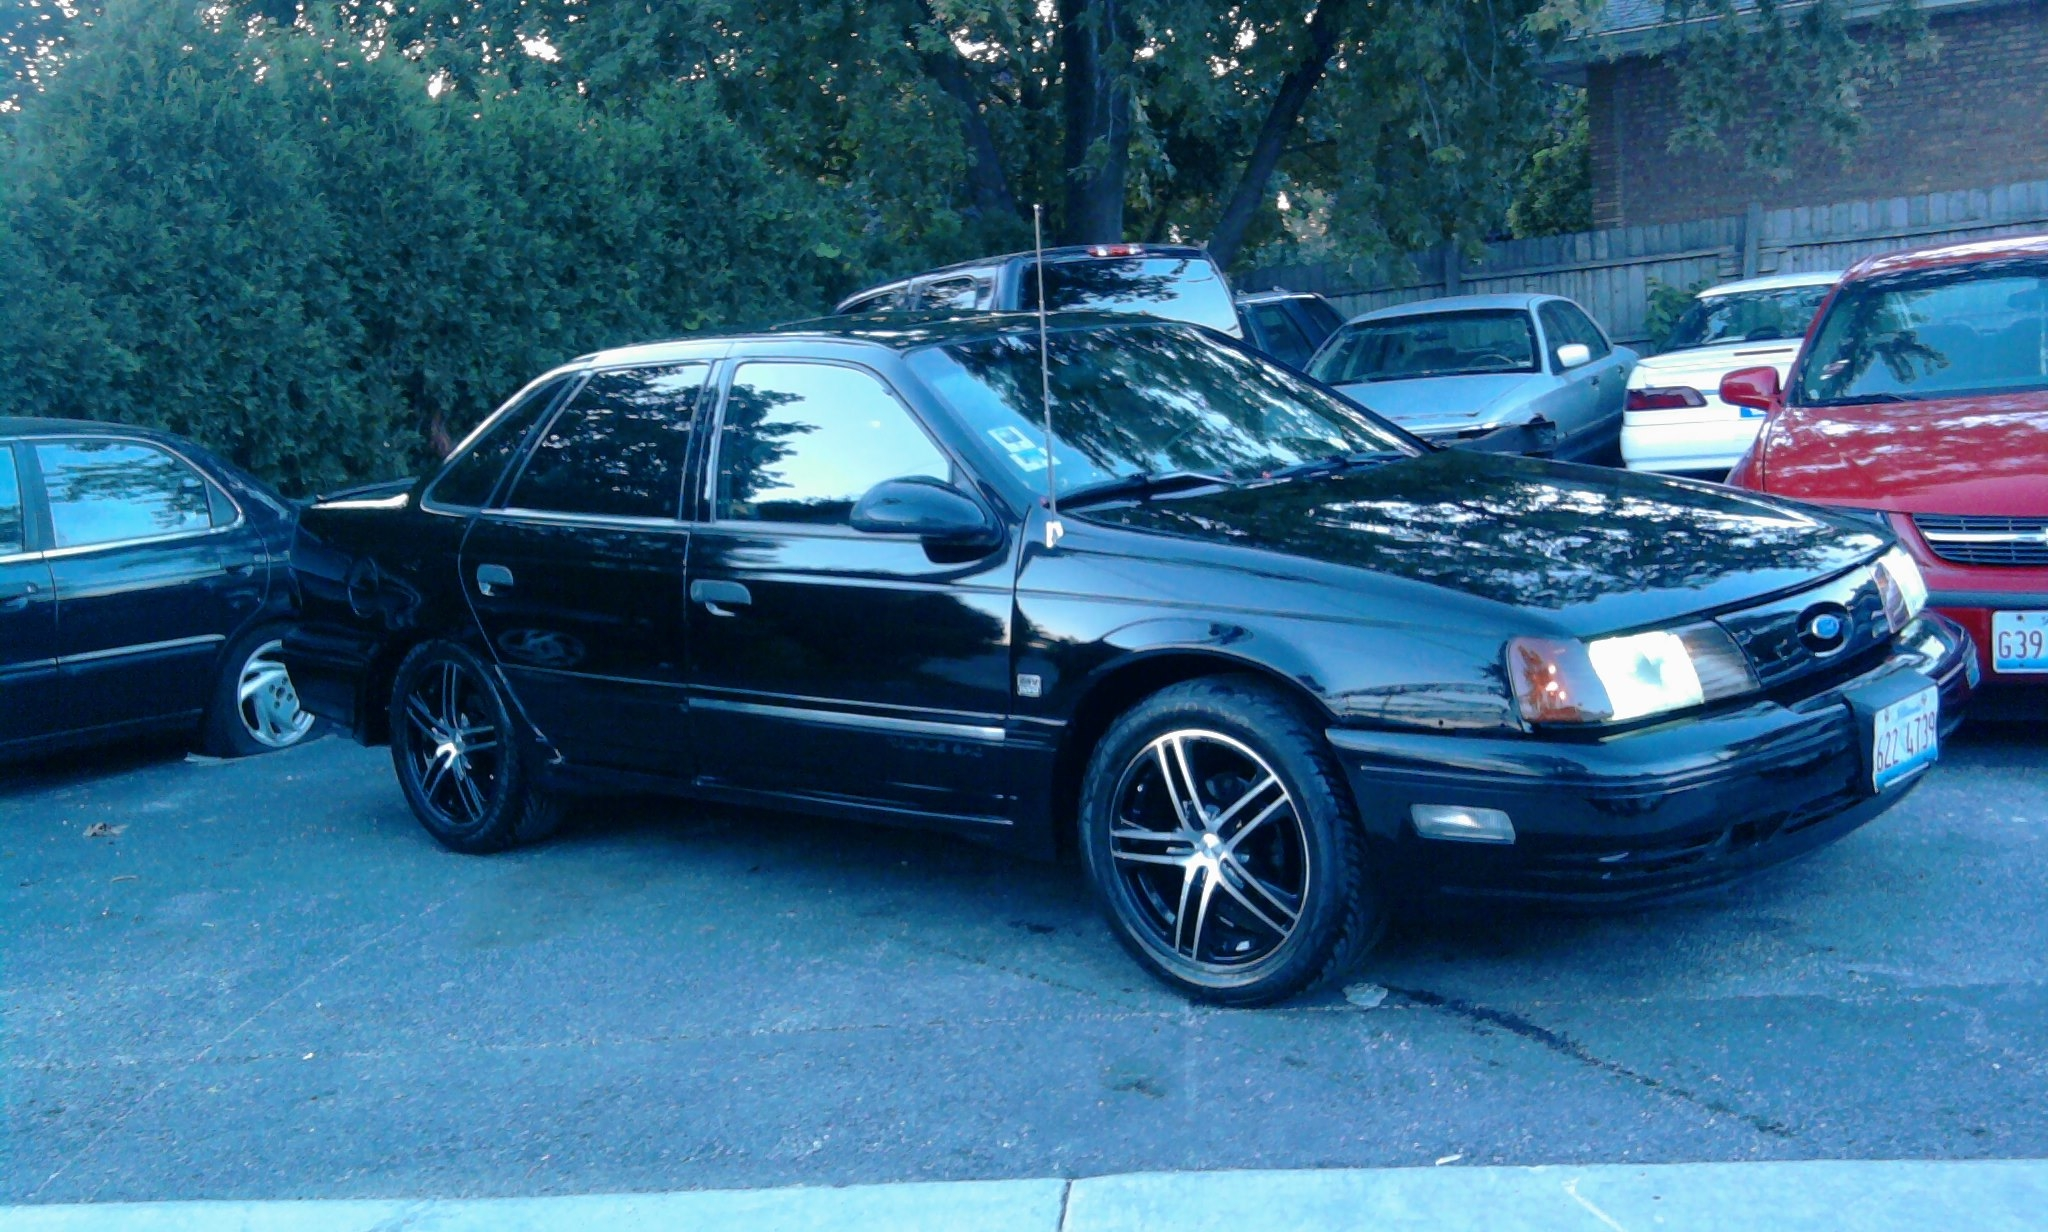 sho90's 1990 Ford Taurus in Cicero, IL